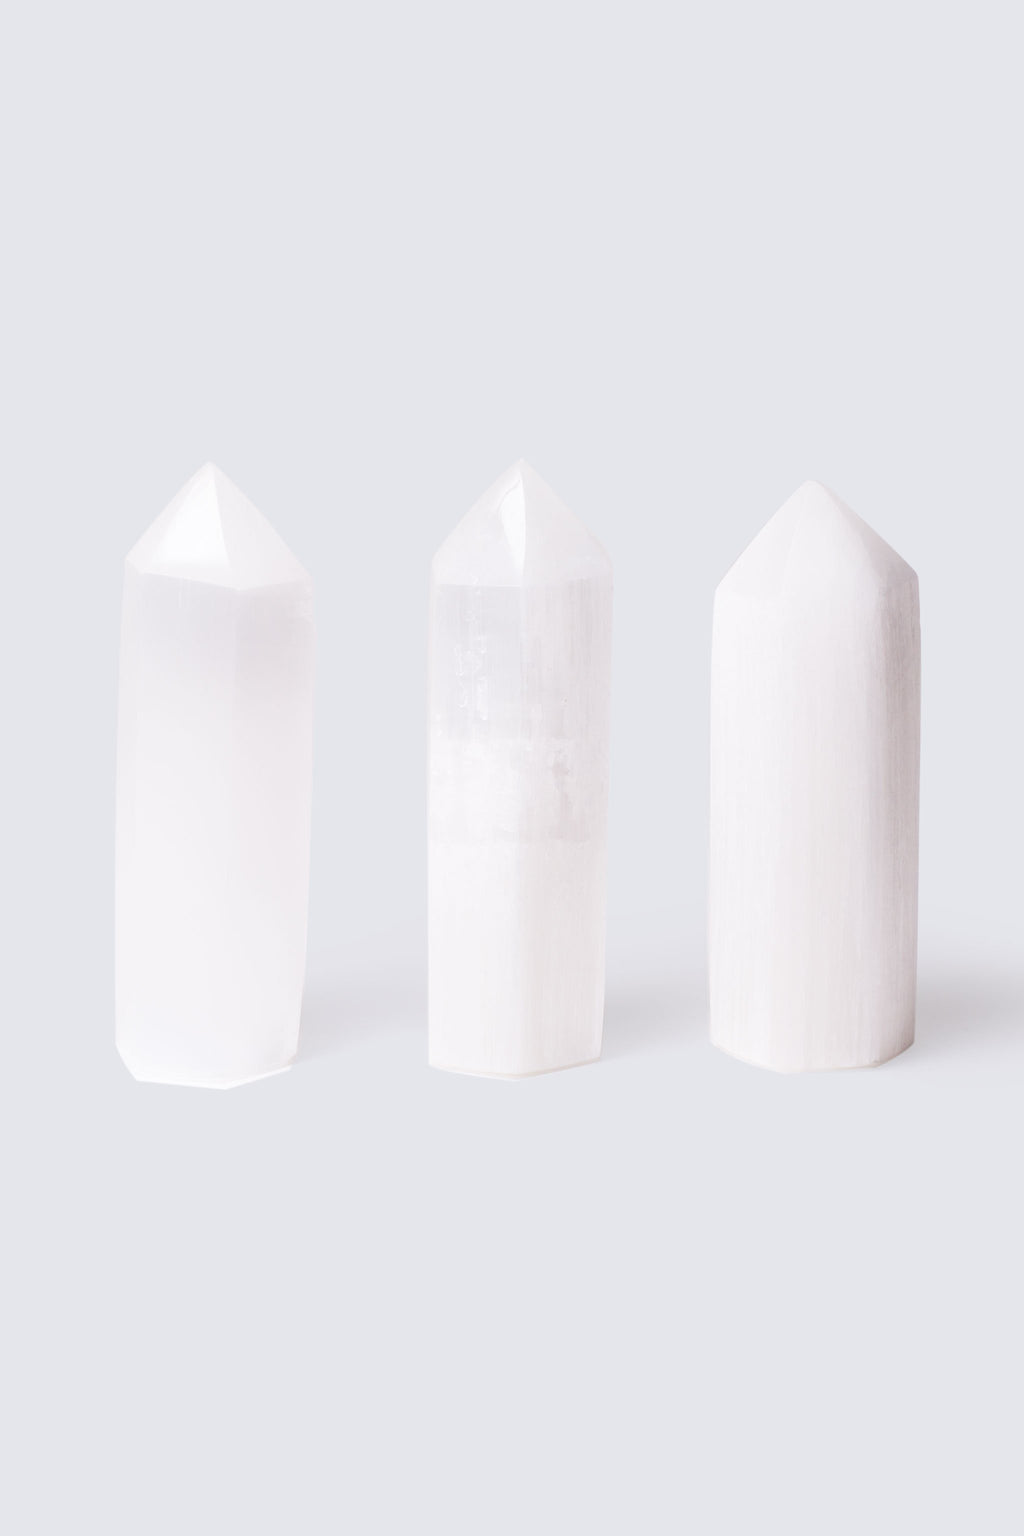 Selenite Tower - Mazz Hanna